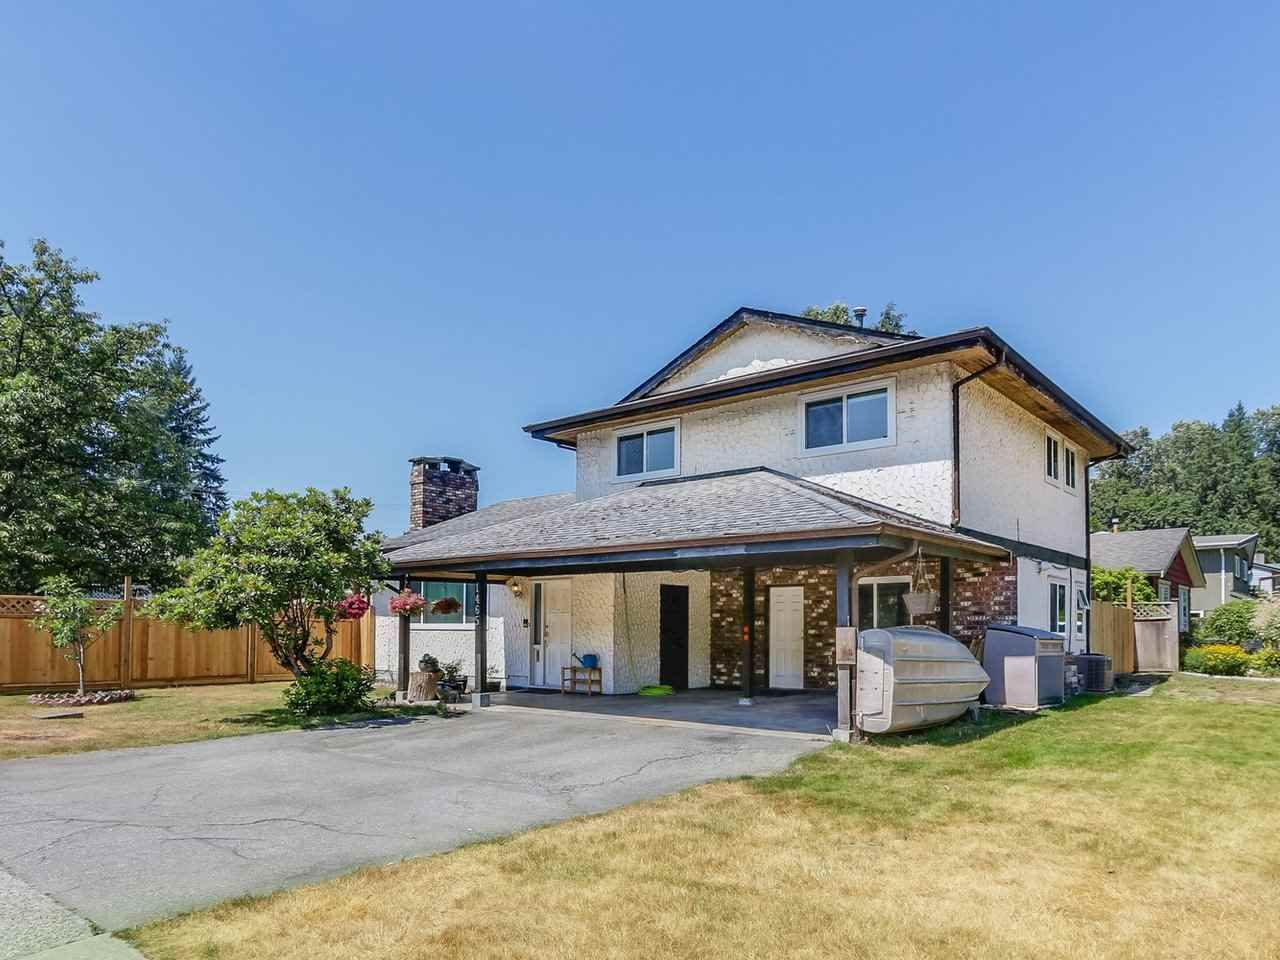 Main Photo: 1465 LAURIER AVENUE in Port Coquitlam: Lincoln Park PQ House for sale : MLS®# R2205044